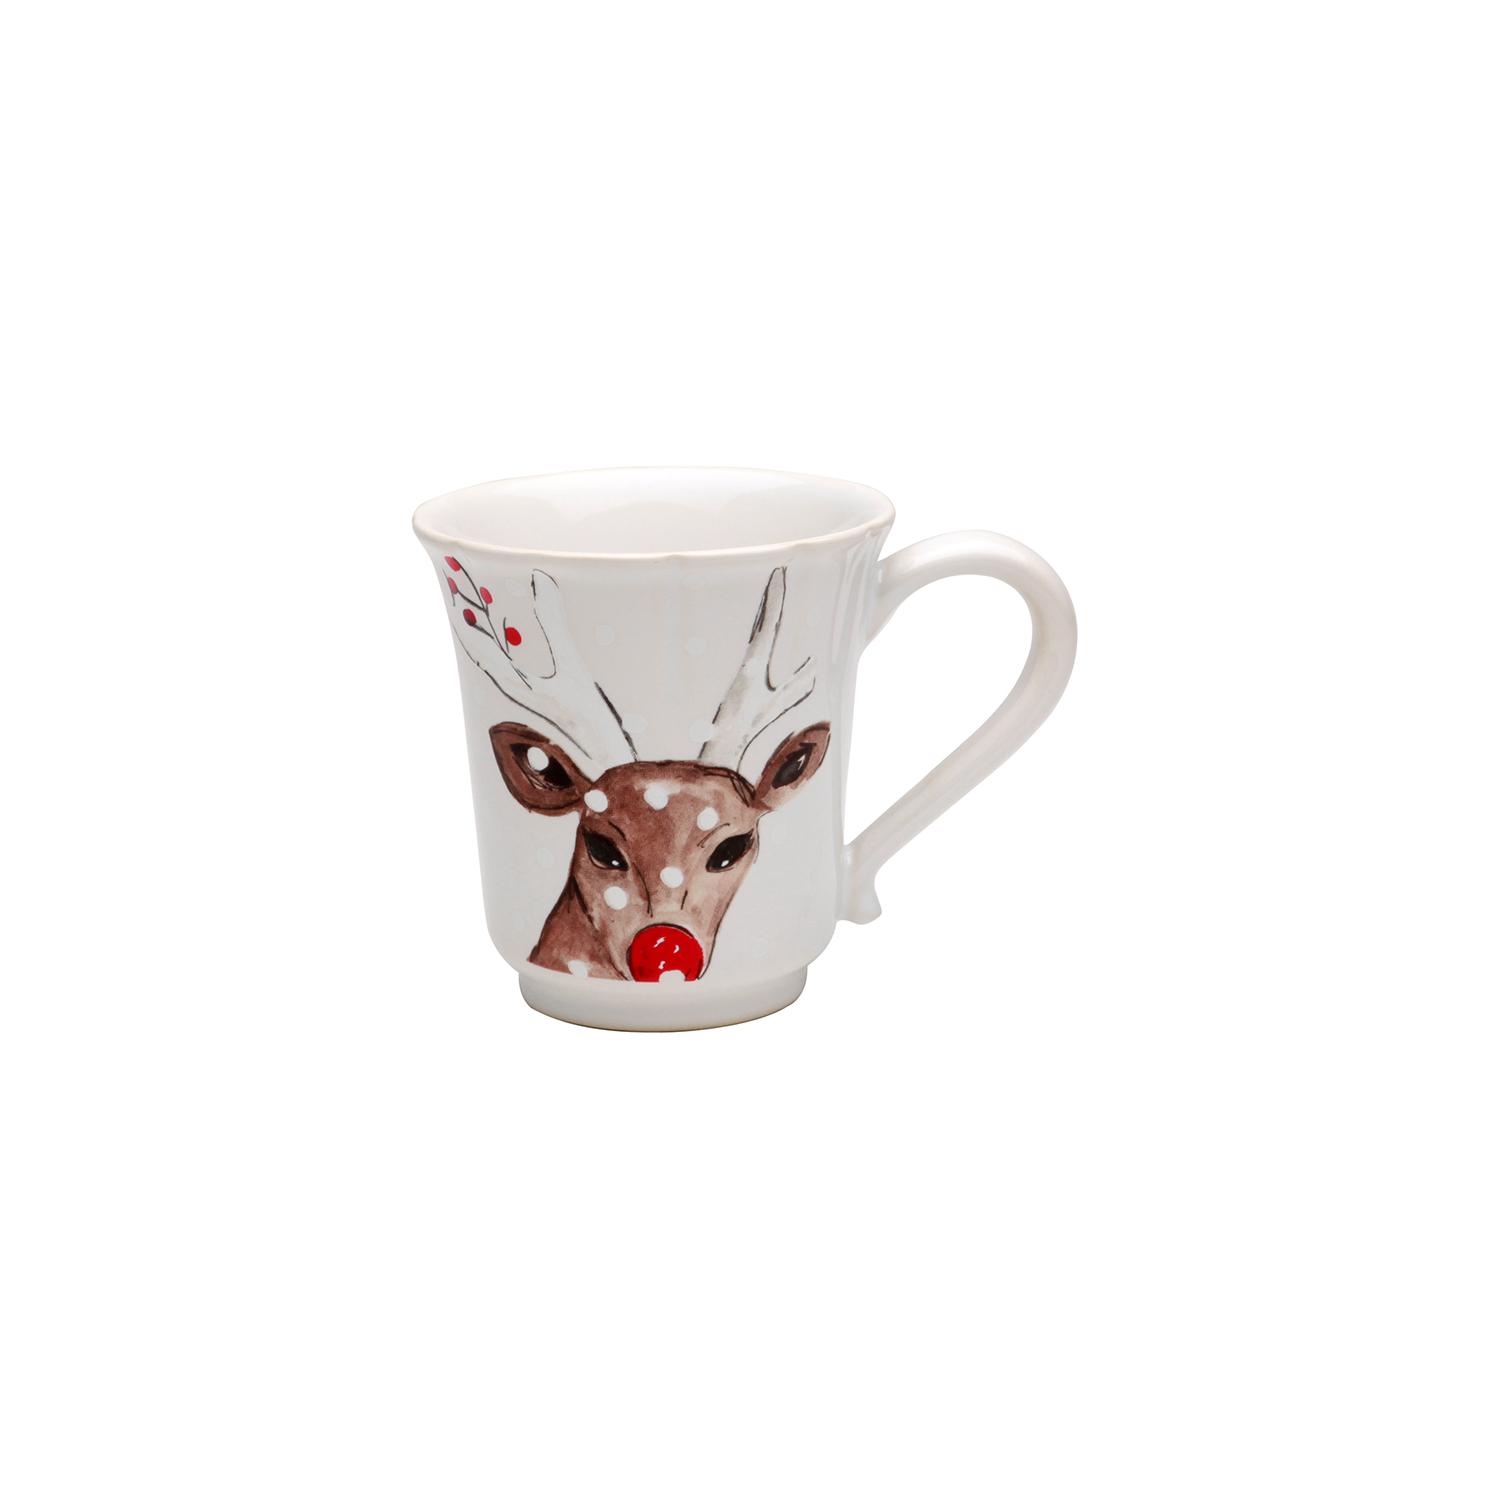 Casafina Deer Friends White Stoneware Coffee Mug, Set of 4